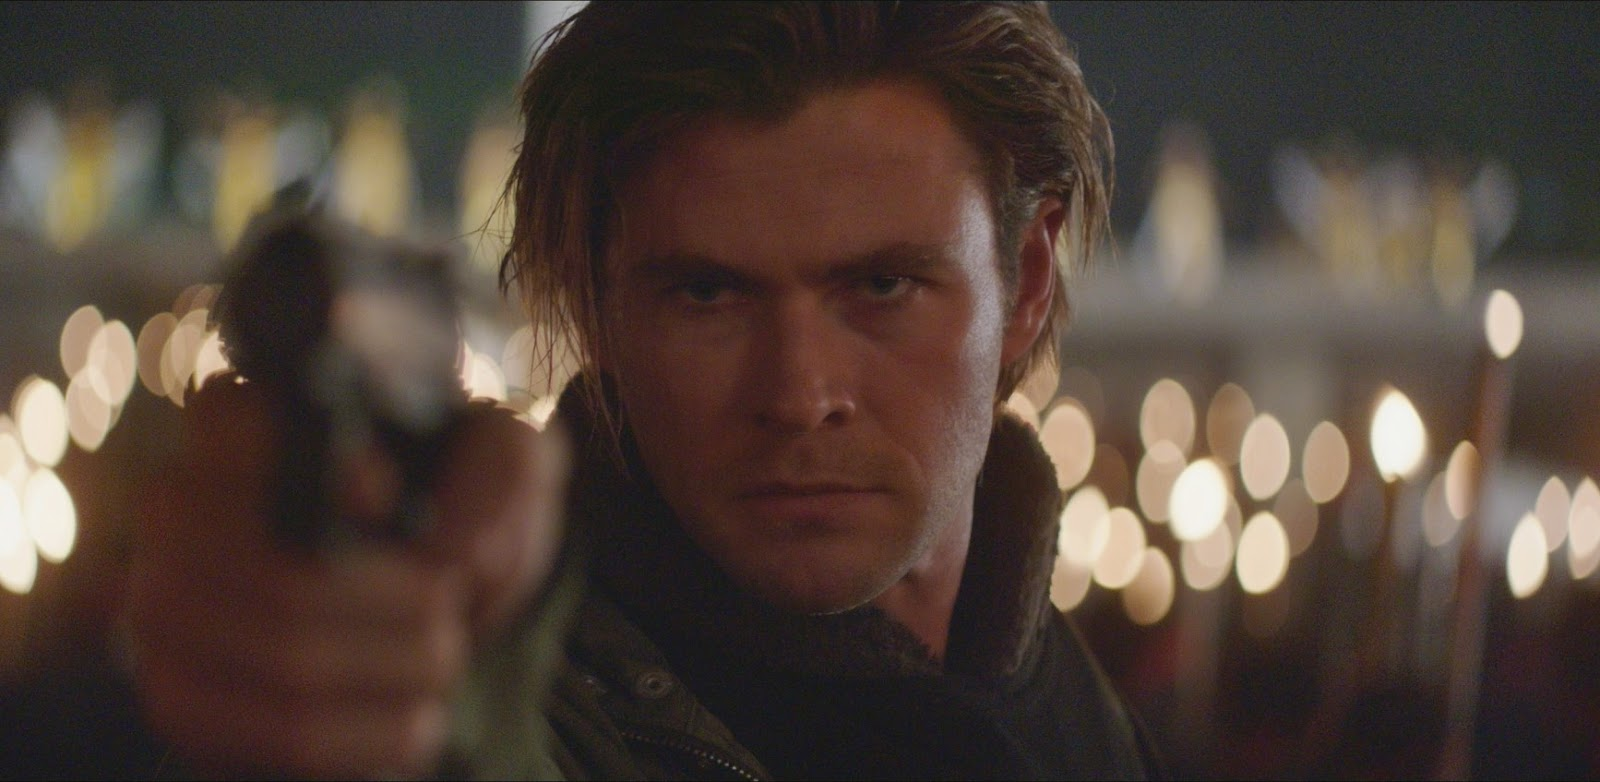 Chris Hemsworth caça cibercriminosos no primeiro trailer de Blackhat, novo filme de Michael Mann